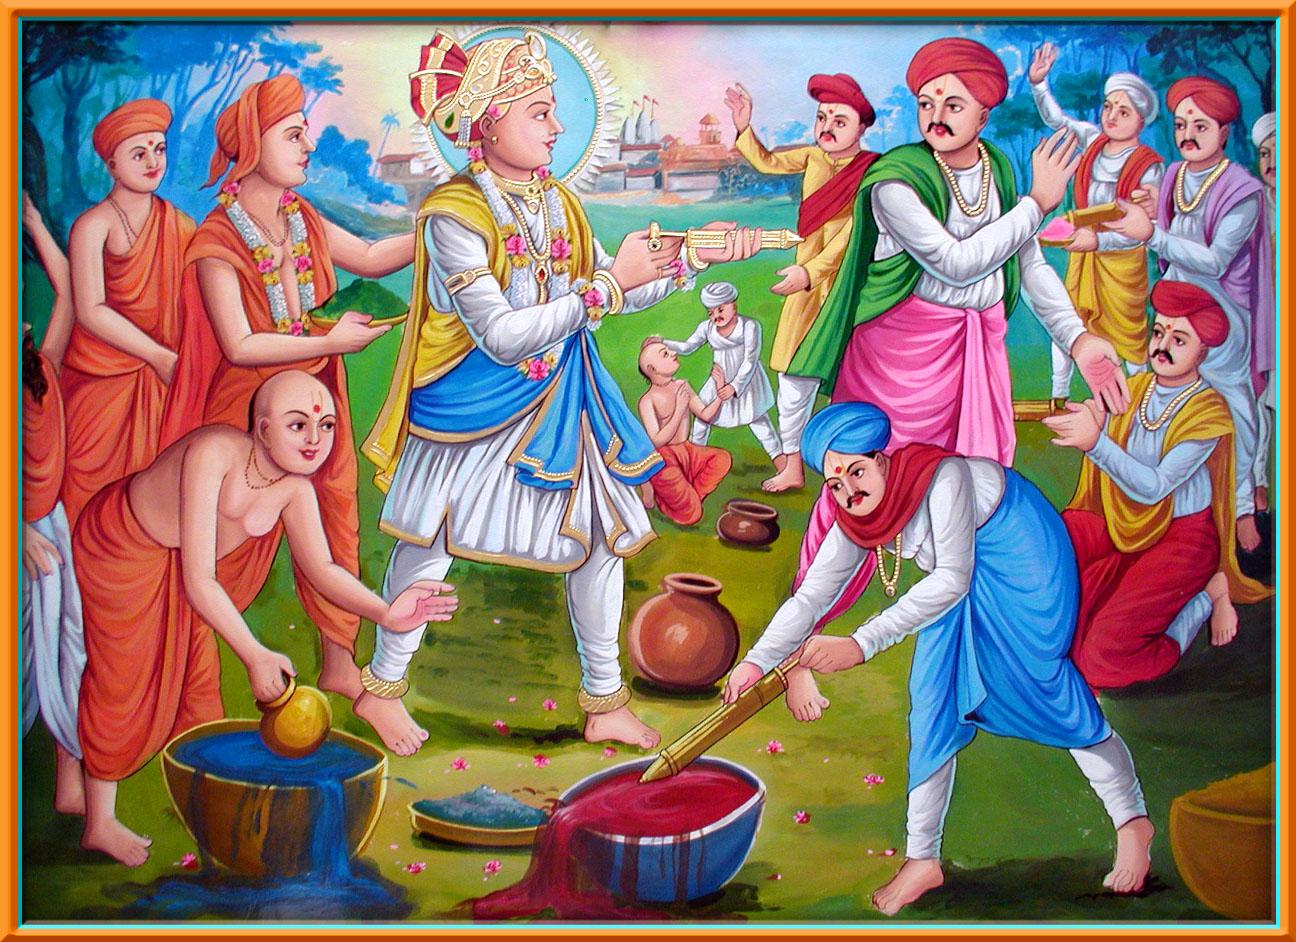 composition on festivals of india Diwali essay – 1 (200 words) diwali is the most significant and famous festival of the india which is being celebrated every year all over the country as well as outside the country people celebrate it very enthusiastically to commemorate the returning of lord rama to his kingdom, ayodhya after a long period of time of 14.